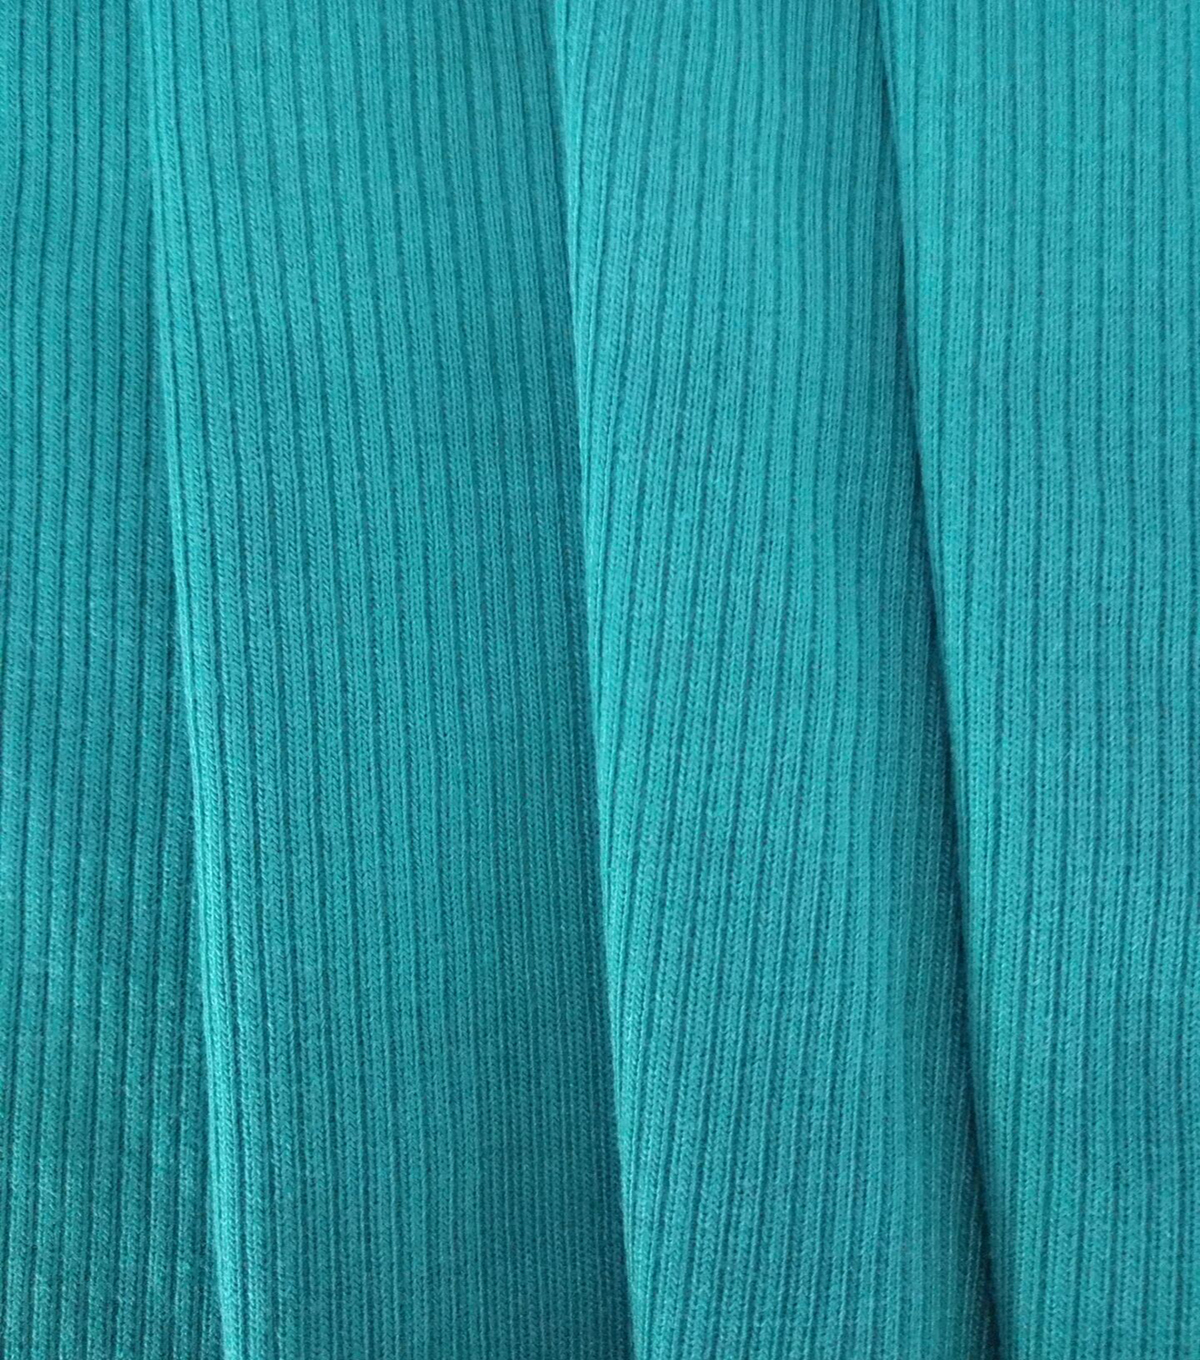 Apparel Knit Fabric-Tiny Ribbed Knit Dark Teal